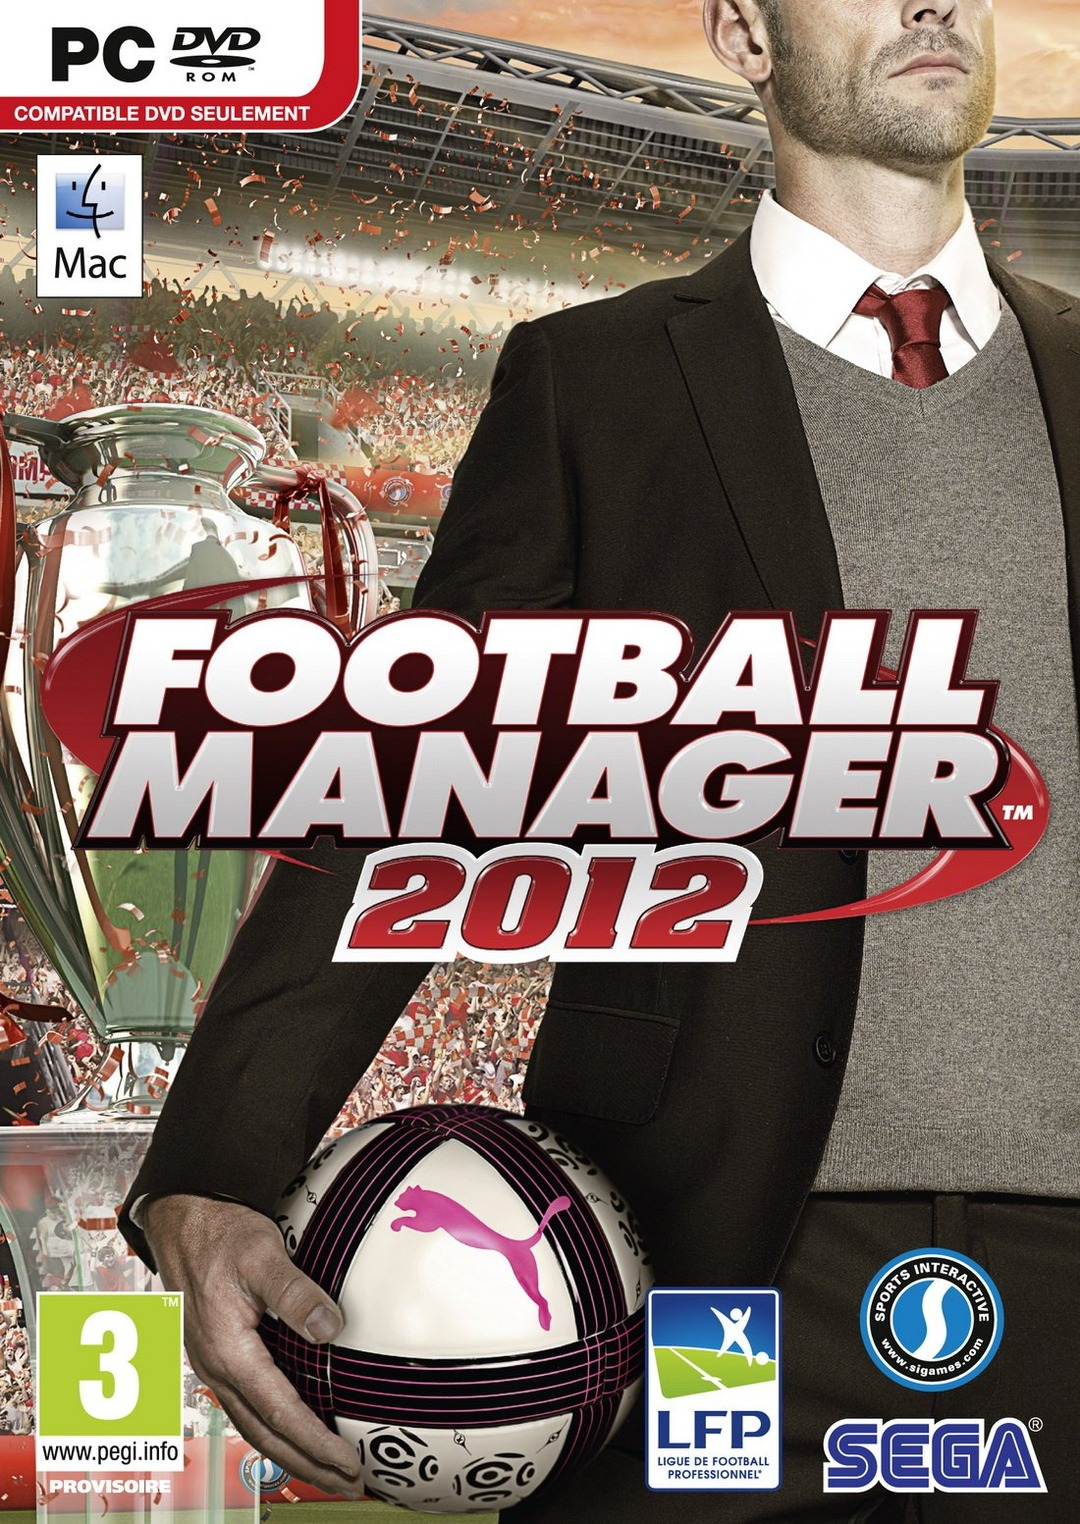 Football Manager 2012 + CRACk + Update [PC | ISO] (Exclue) [FS] [WU]